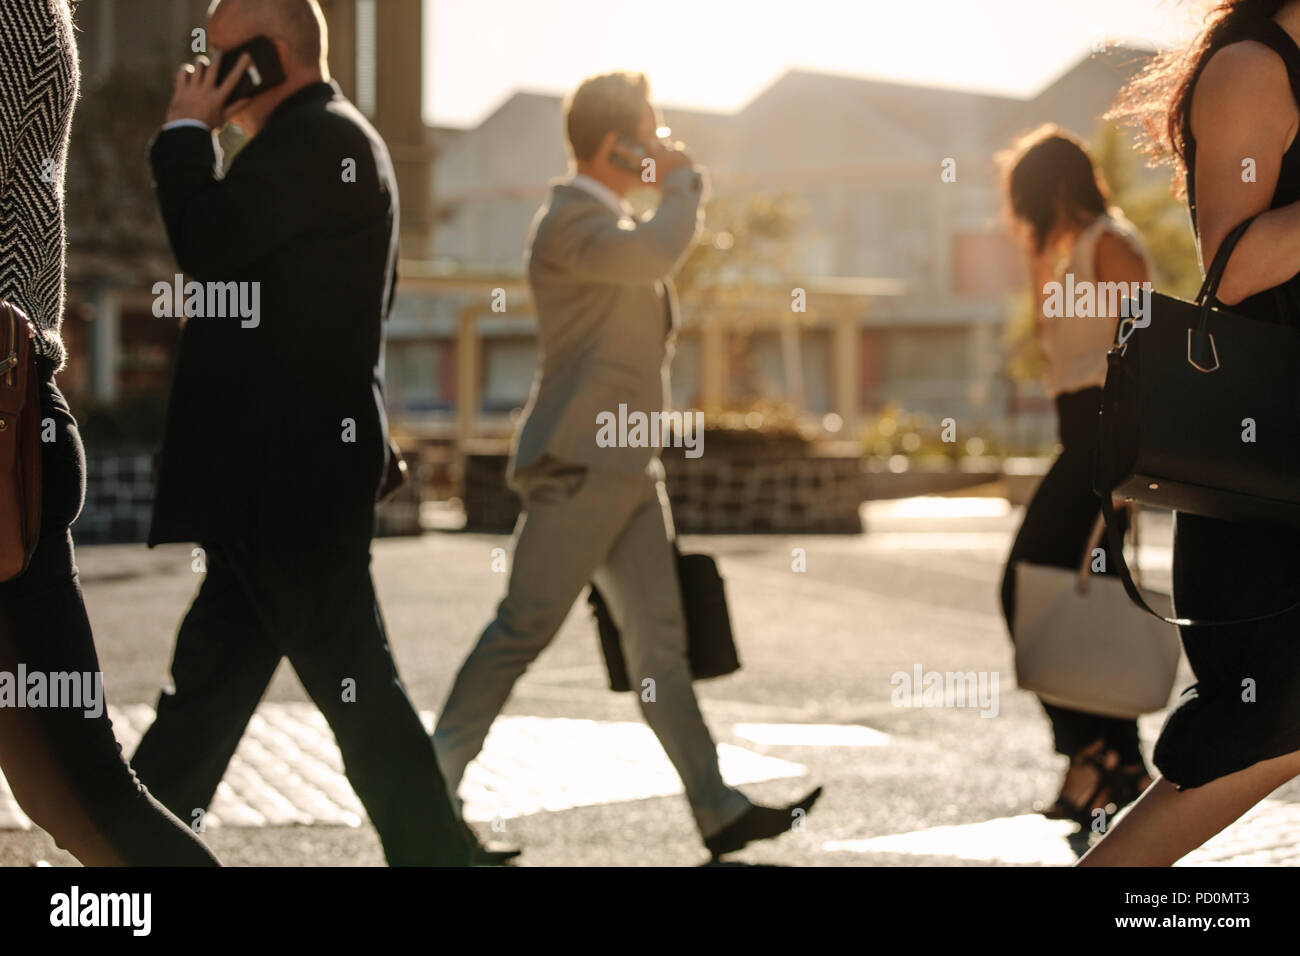 Men and women using mobile phone while commuting to office on a crowded street with sun flare in the background. People leading a busy life using mobi - Stock Image